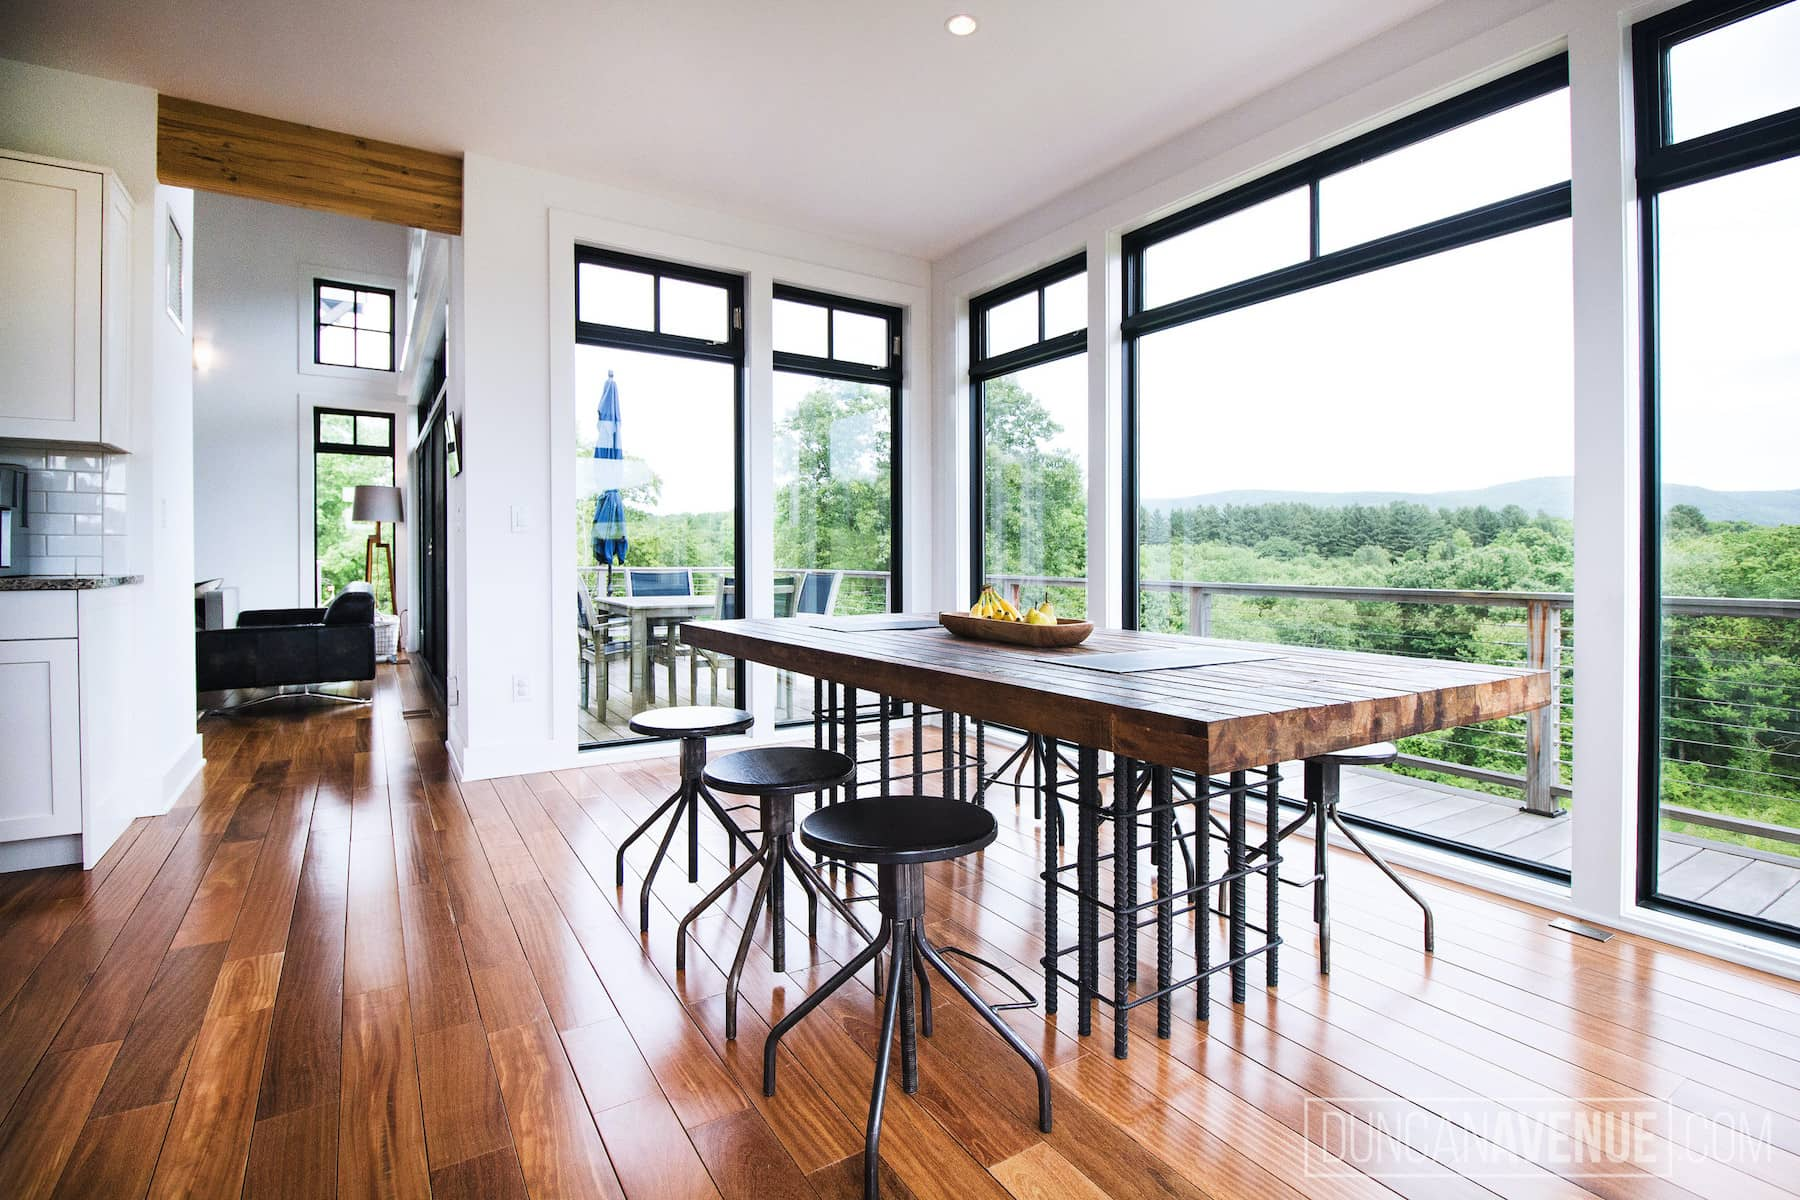 Real Estate Drone Photography Jobs - Interior - Sunny 16